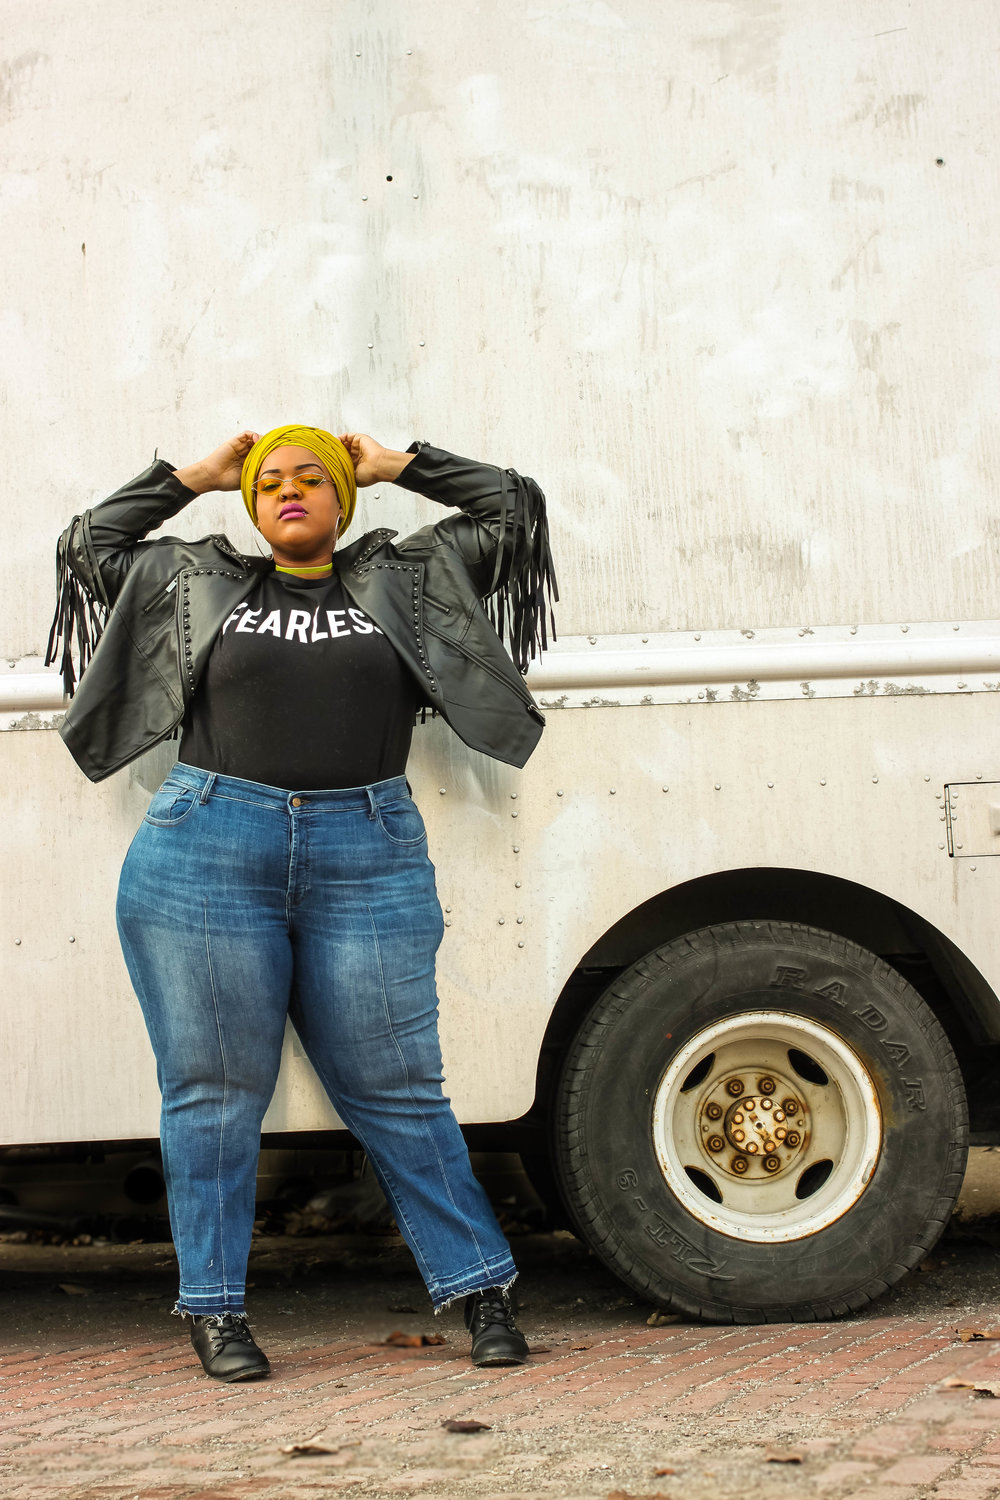 Leah-Vernon-Plus-Size-Model-Detroit-Blogger-Muslim-Girl-Body-Positive-Activist-Feminist-8.jpg